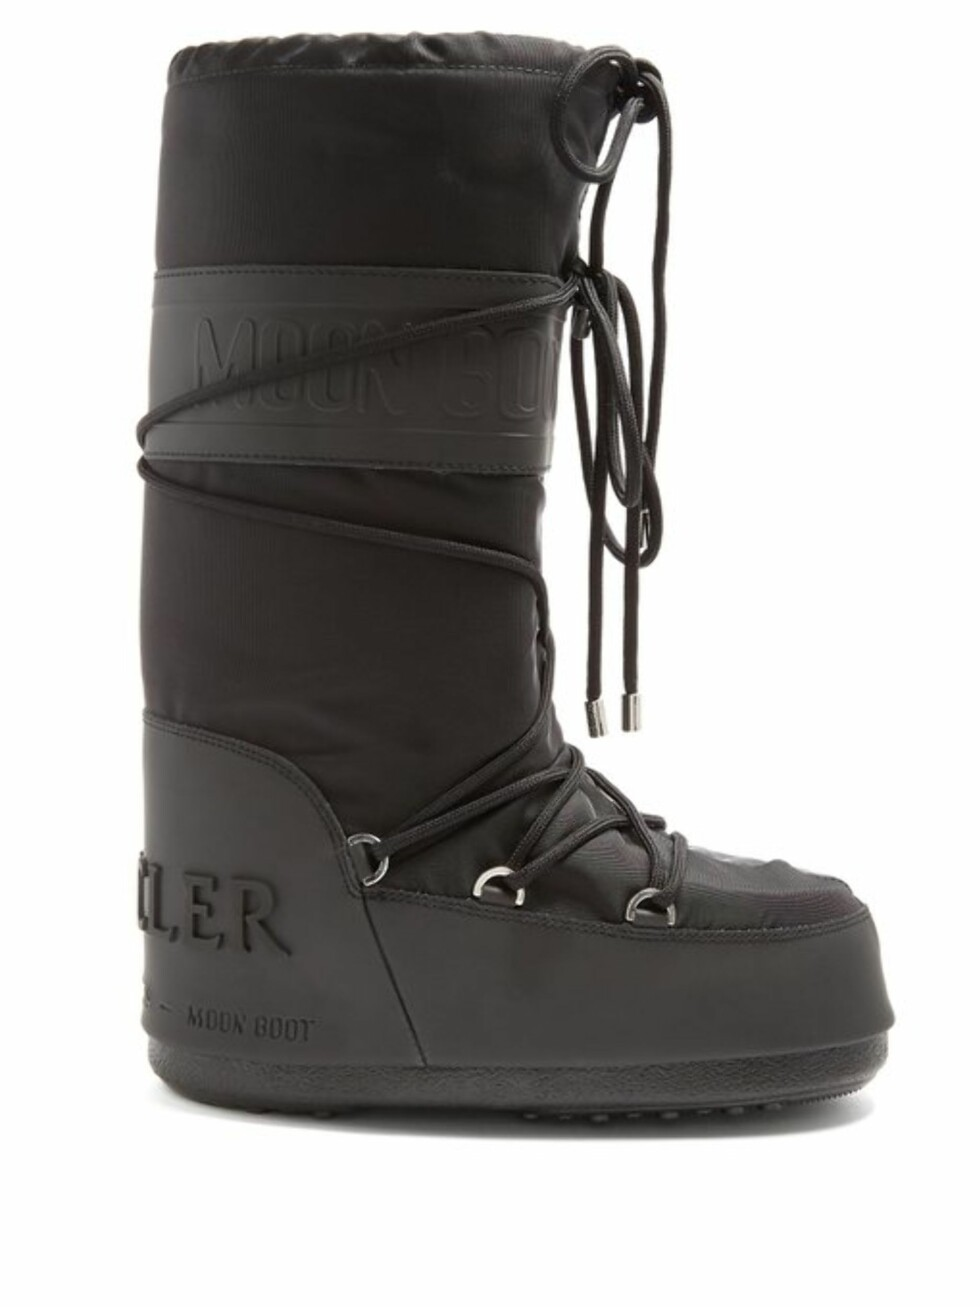 Sko fra Mocler x Moon Boot |2585,-| https://www.matchesfashion.com/intl/products/Moncler-X-Moon-Boot%C2%AE-leather-trimmed-apr%C3%A9s-ski-boots-1200141